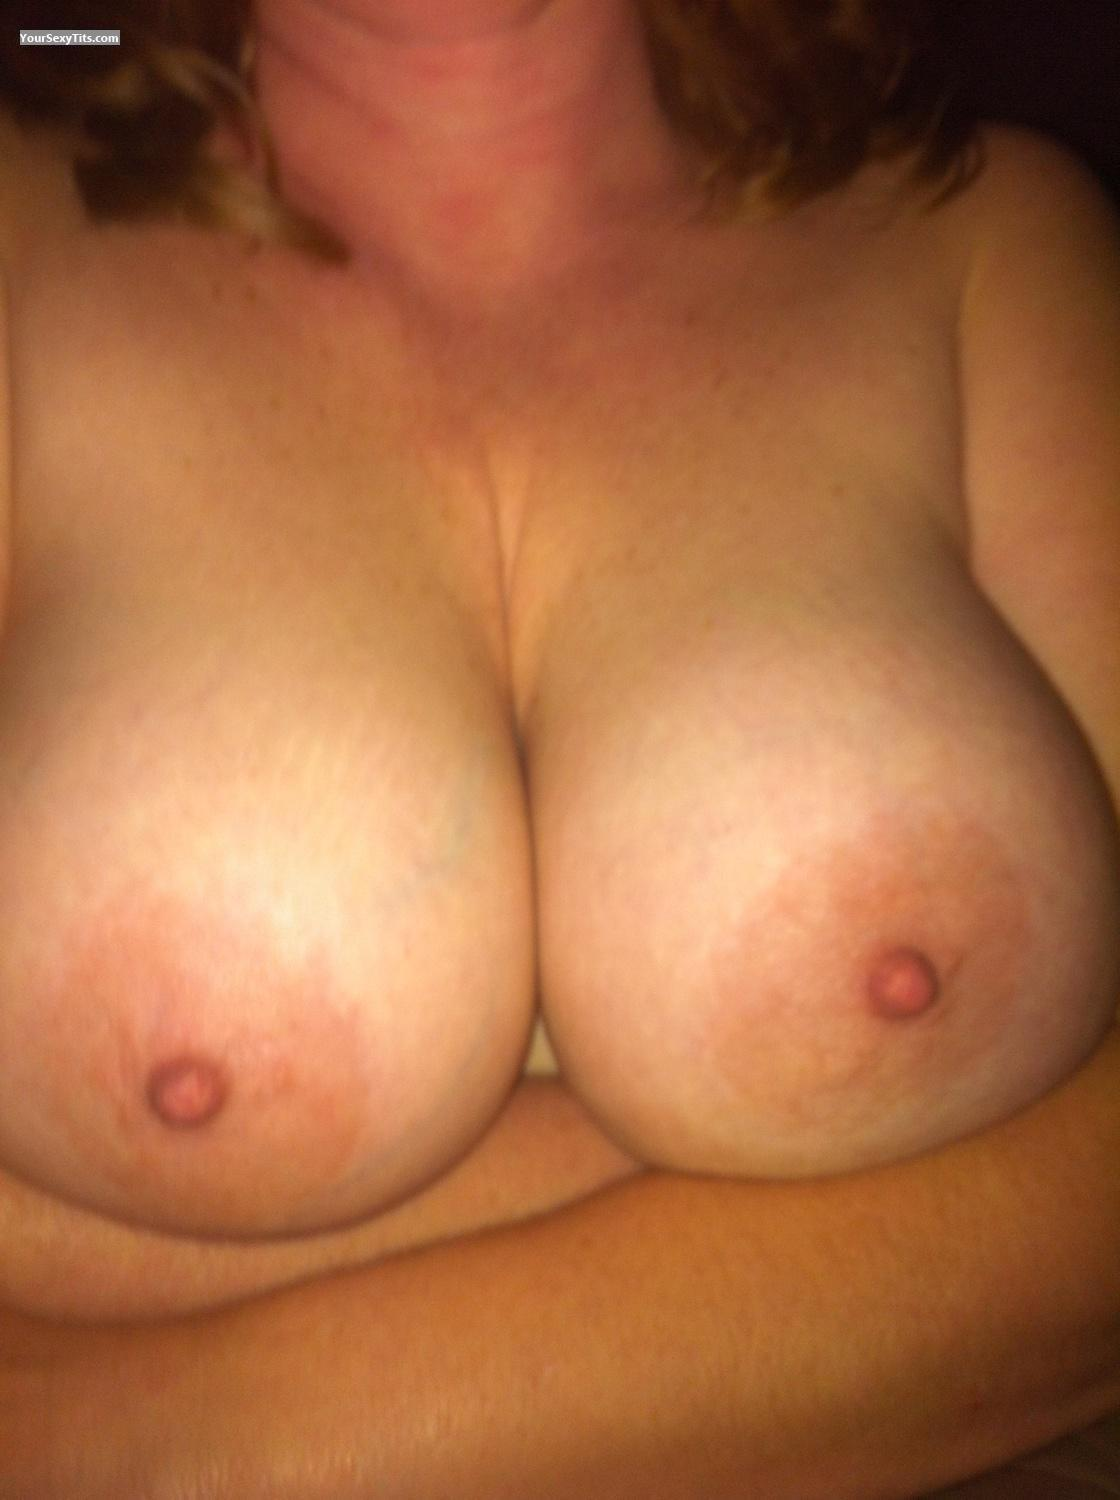 Tit Flash: Big Tits By IPhone - Wowza from United States